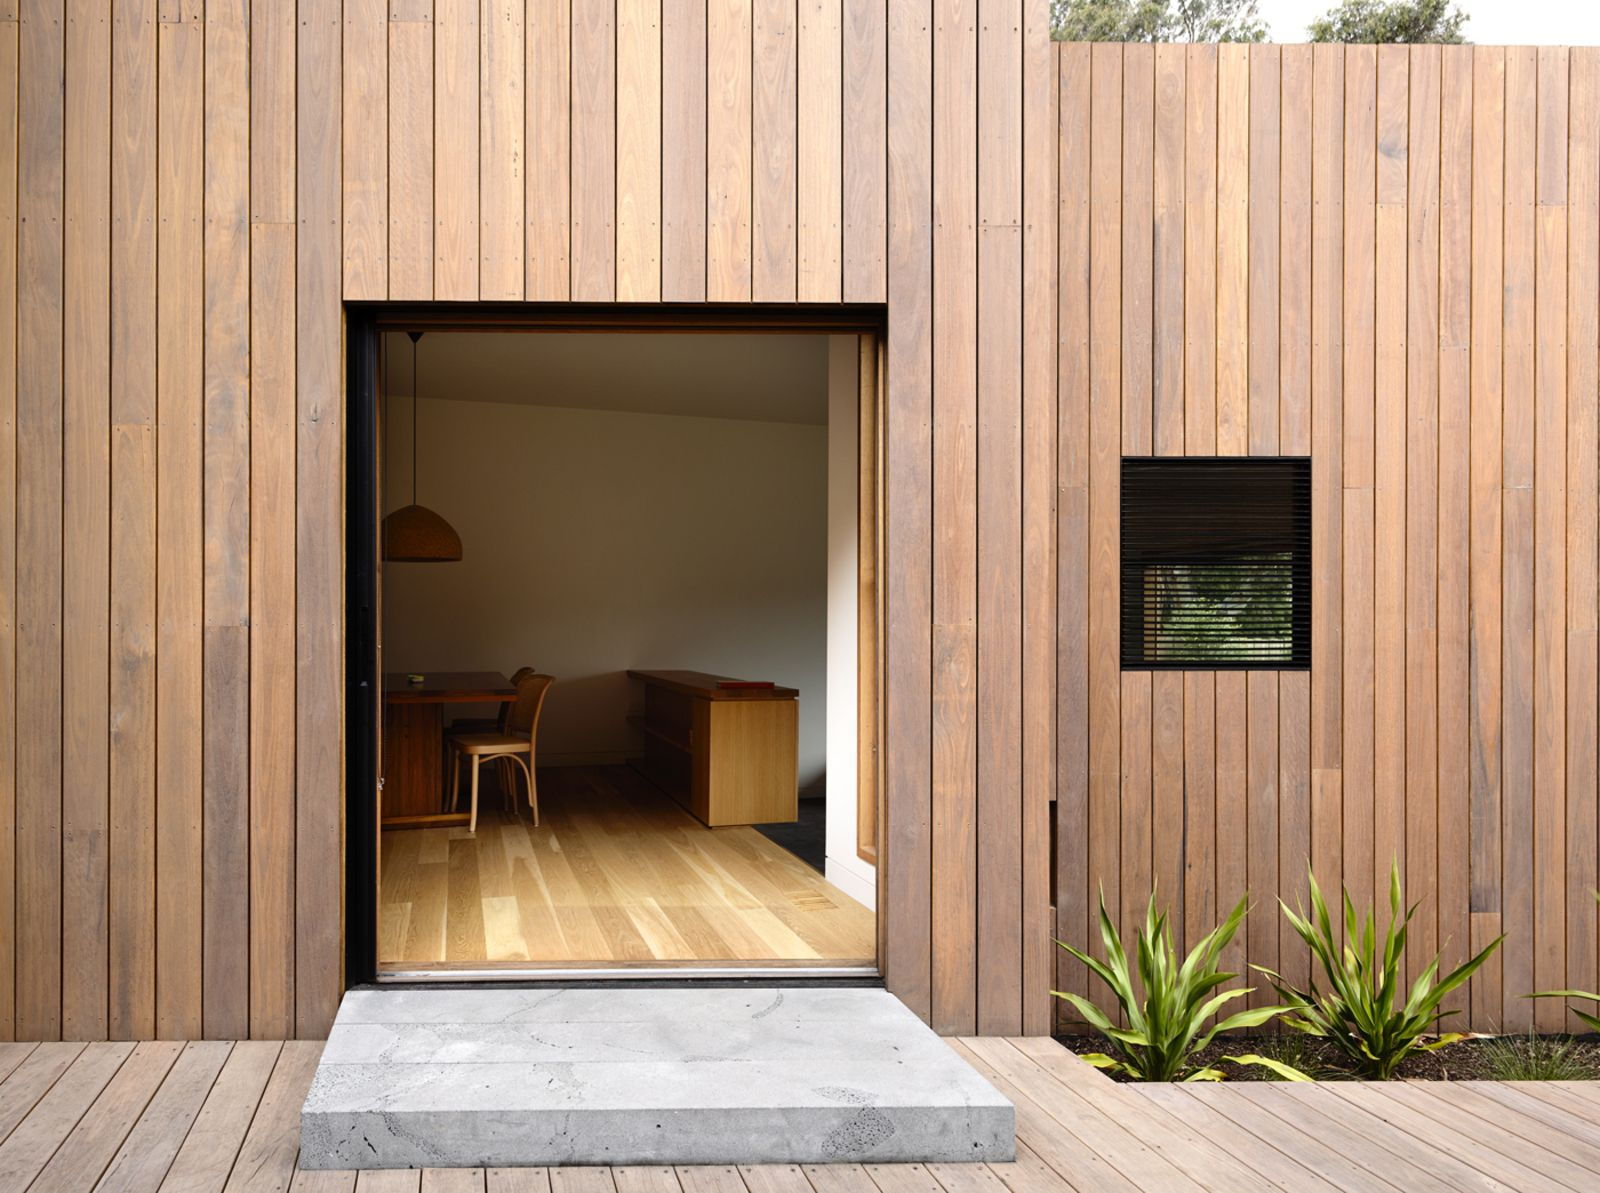 Australian firm Rob Kennon Architects strengthened the home's connection to the outdoors.  In 2013, Rob Kennon Architects overhauled a 1980s extension to an Edwardian family home that sat atop a lush hill in Kew, a suburb of Melbourne.